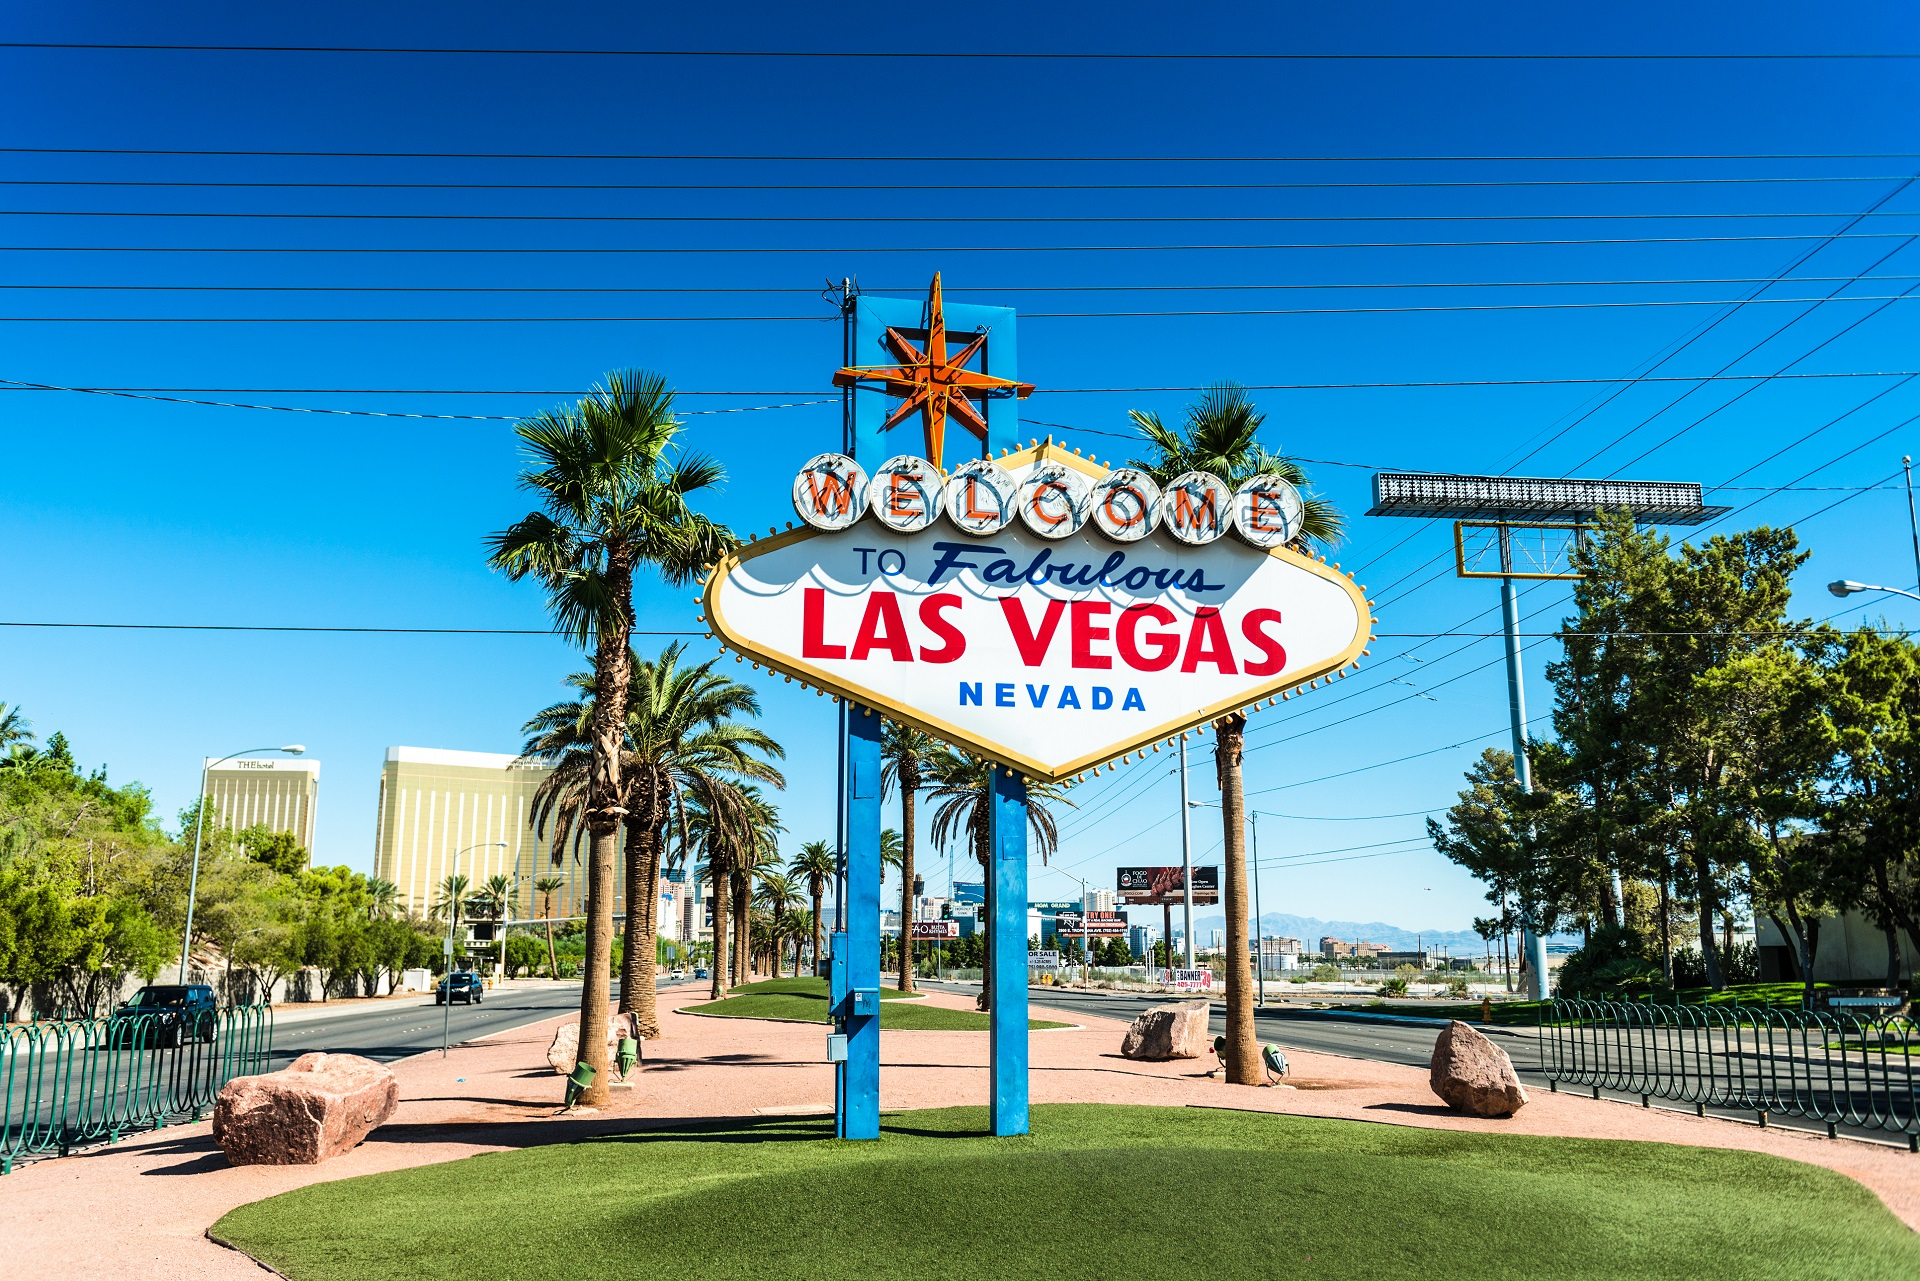 Do and Don'ts in Las Vegas, Las Vegas Sign, Welcome to Fabulous Las Vegas Nevada